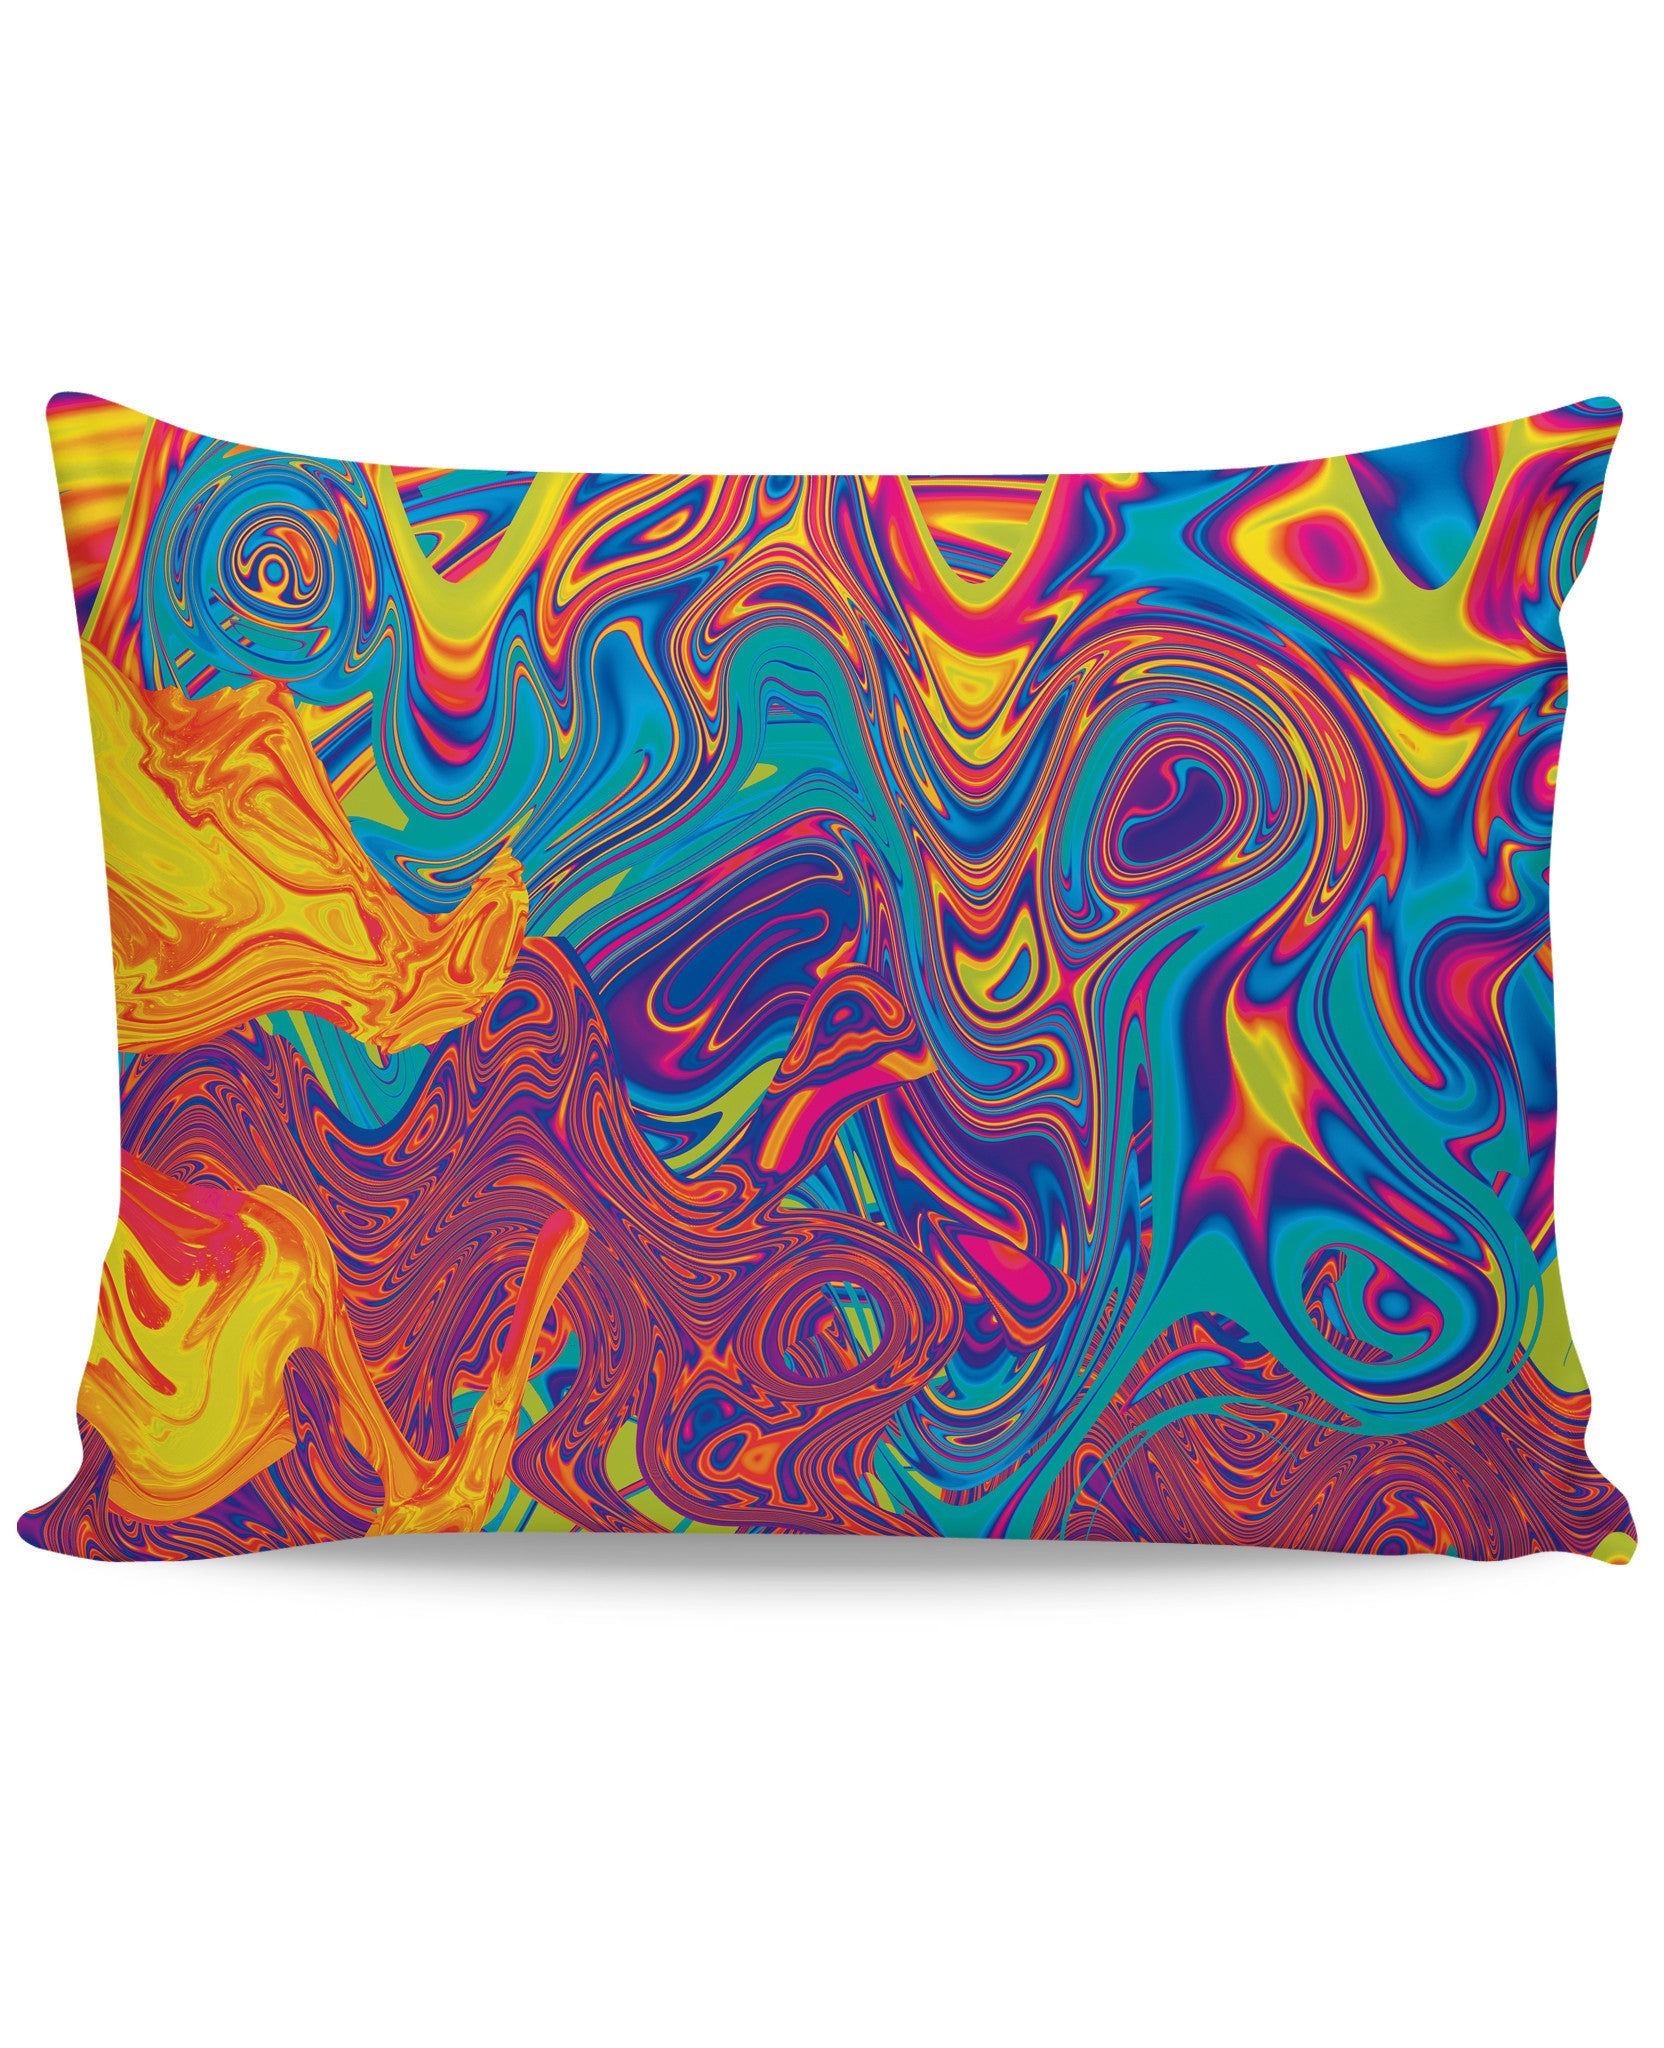 Oil Spill Pillow Case